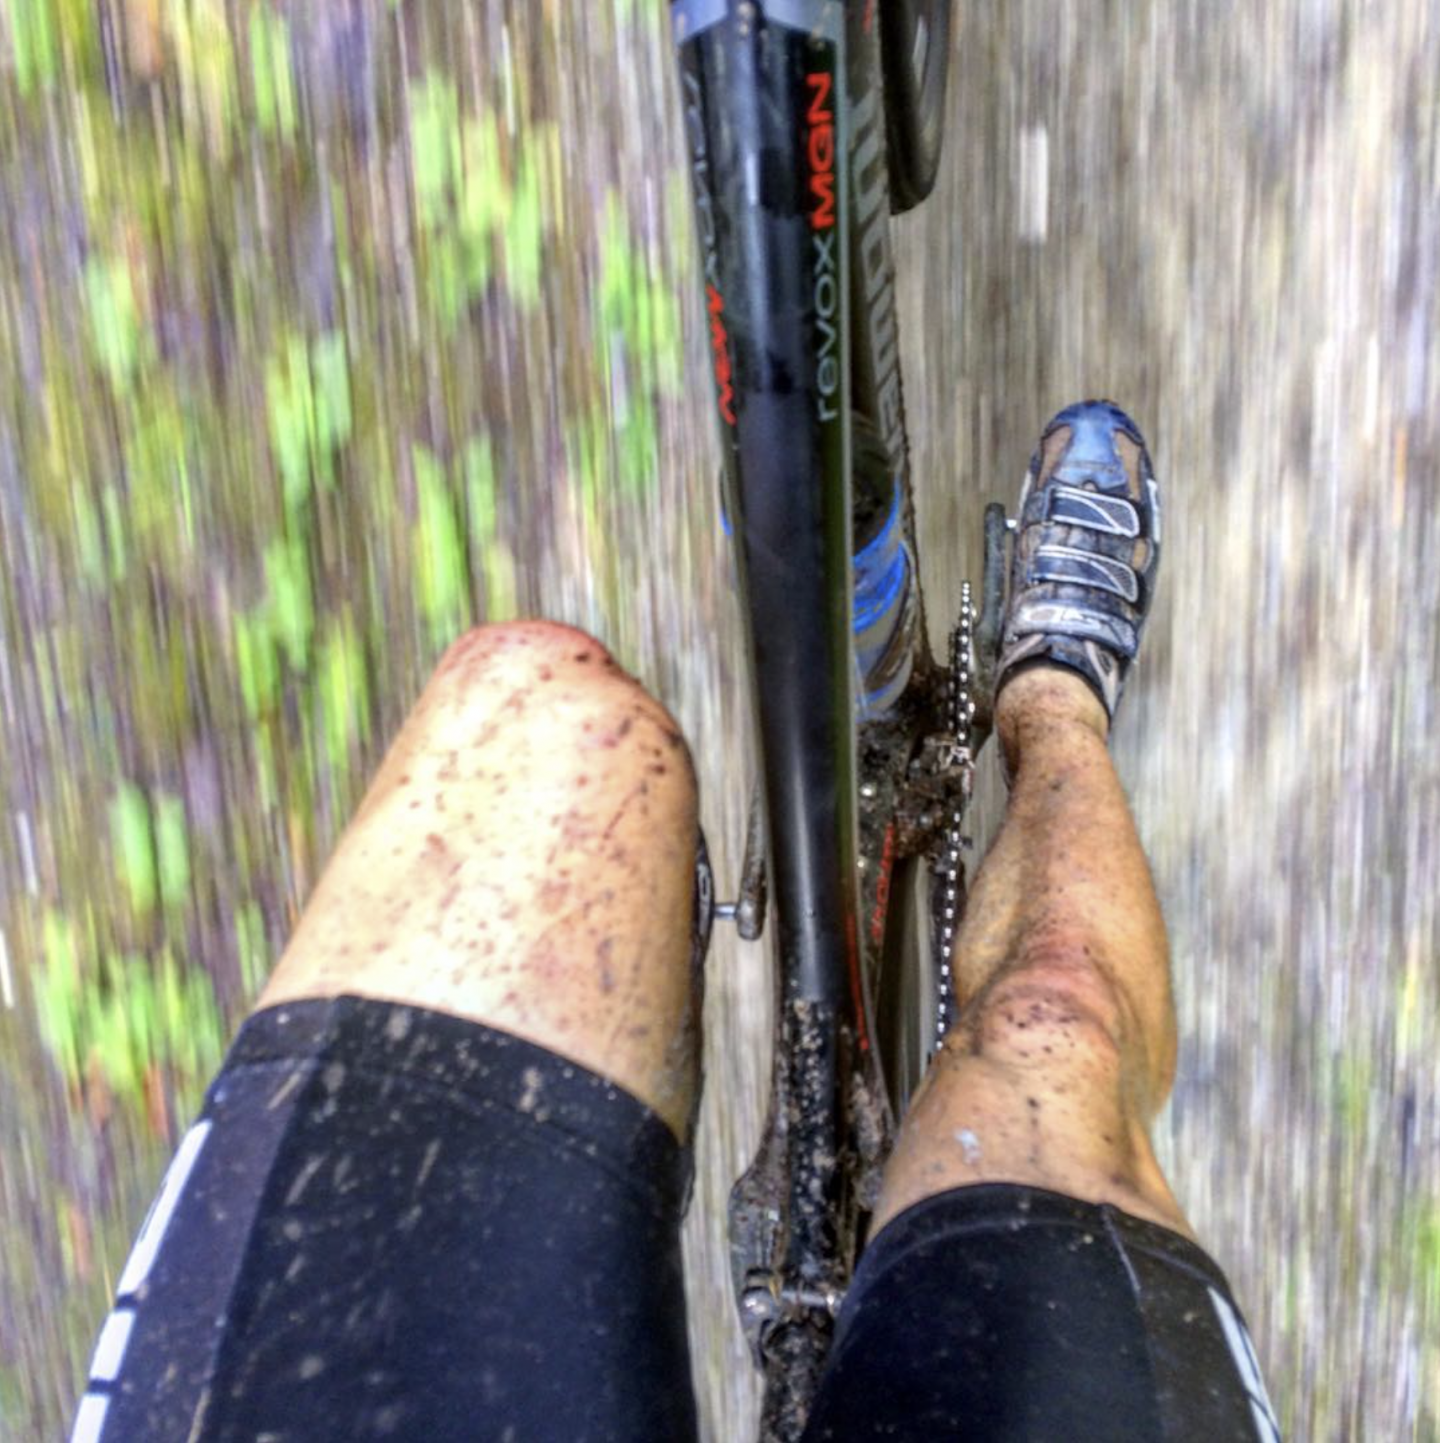 Muddy legs during mountainbiking. working part-time boosts career